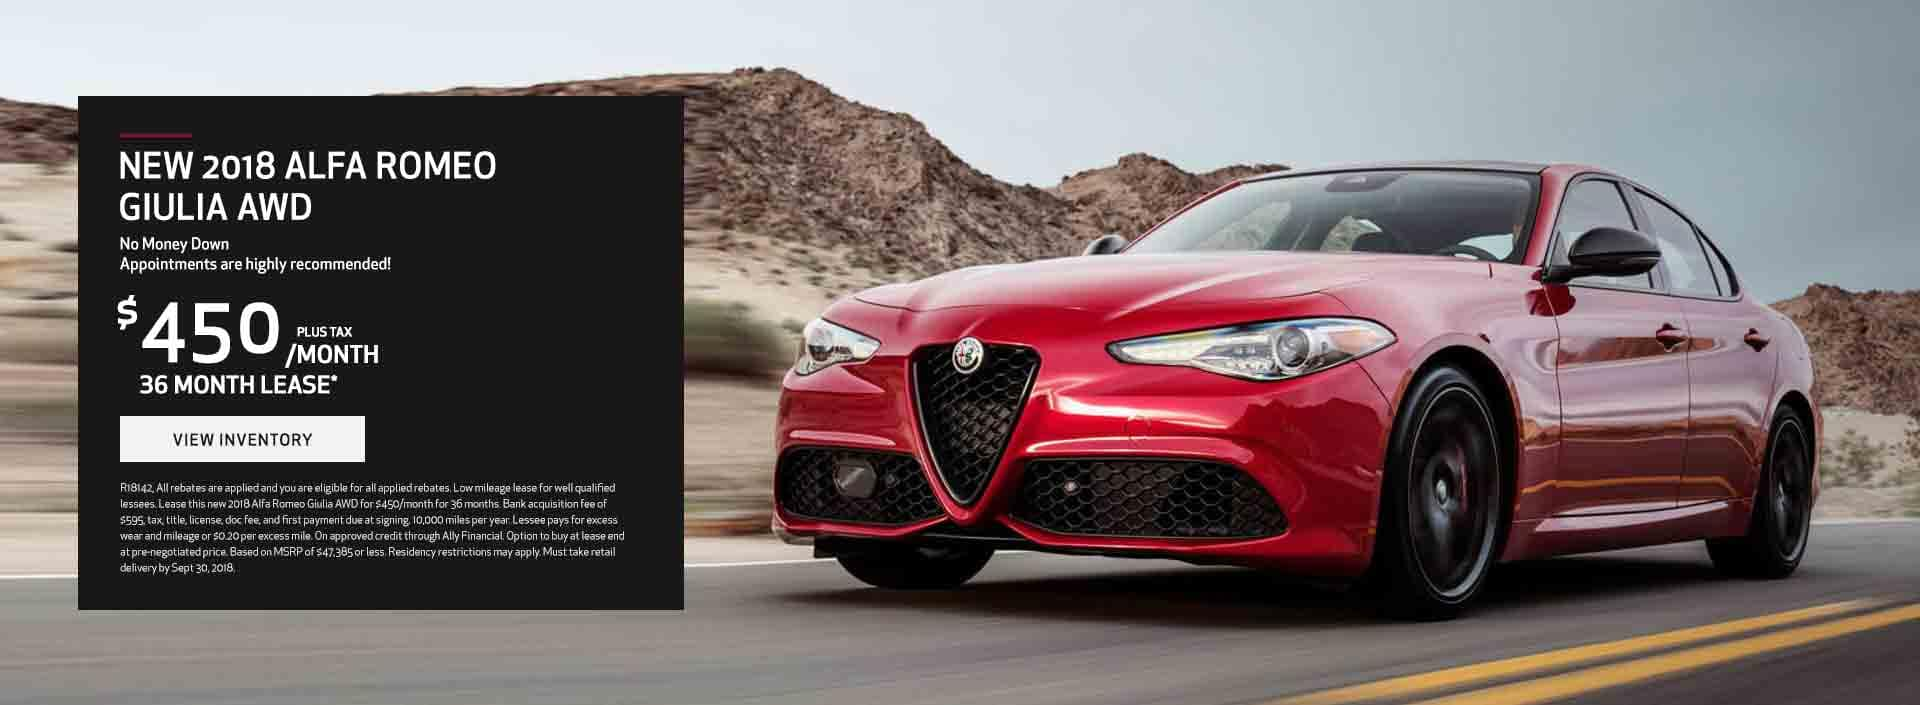 Giulia Offer in Schaumburg